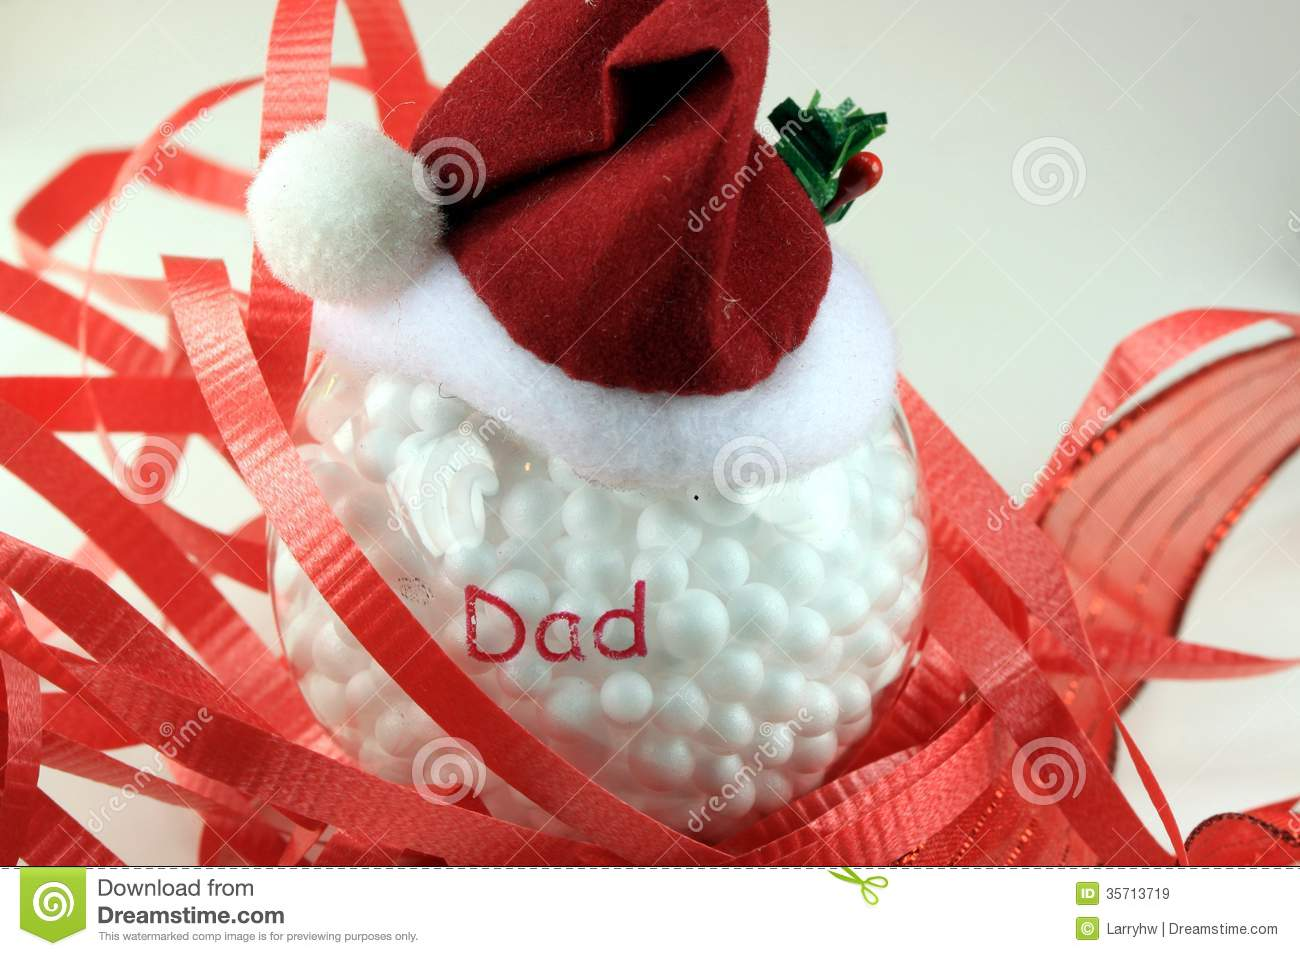 Dad christmas ornament - Santa Hat Christmas Ornament For Dad